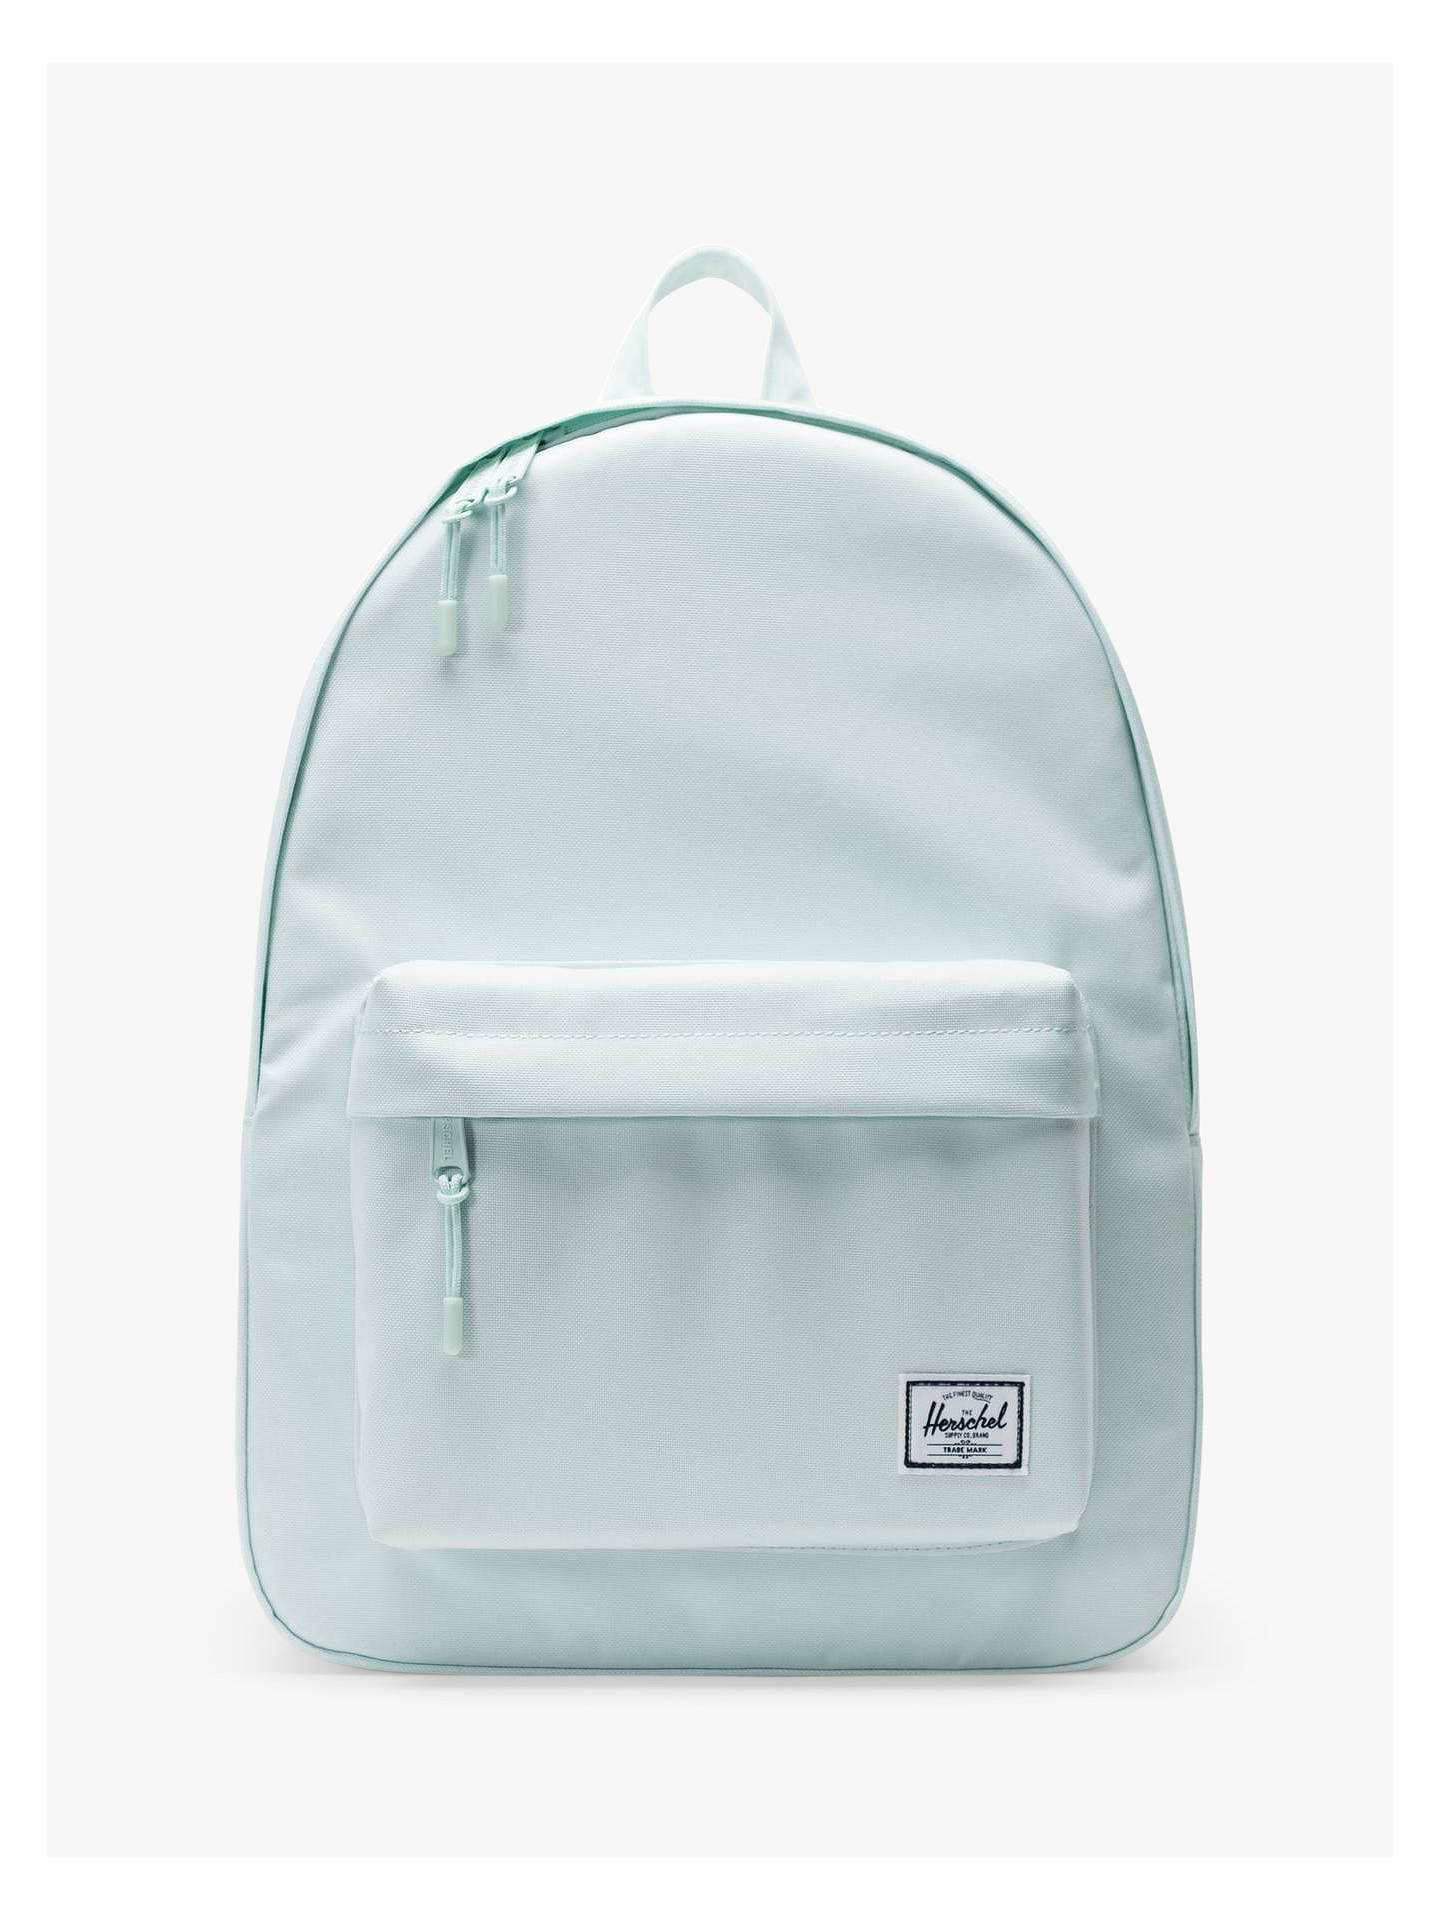 6ef7a8adf78 Herschel Supply Co. Classic Small Backpack at John Lewis   Partners